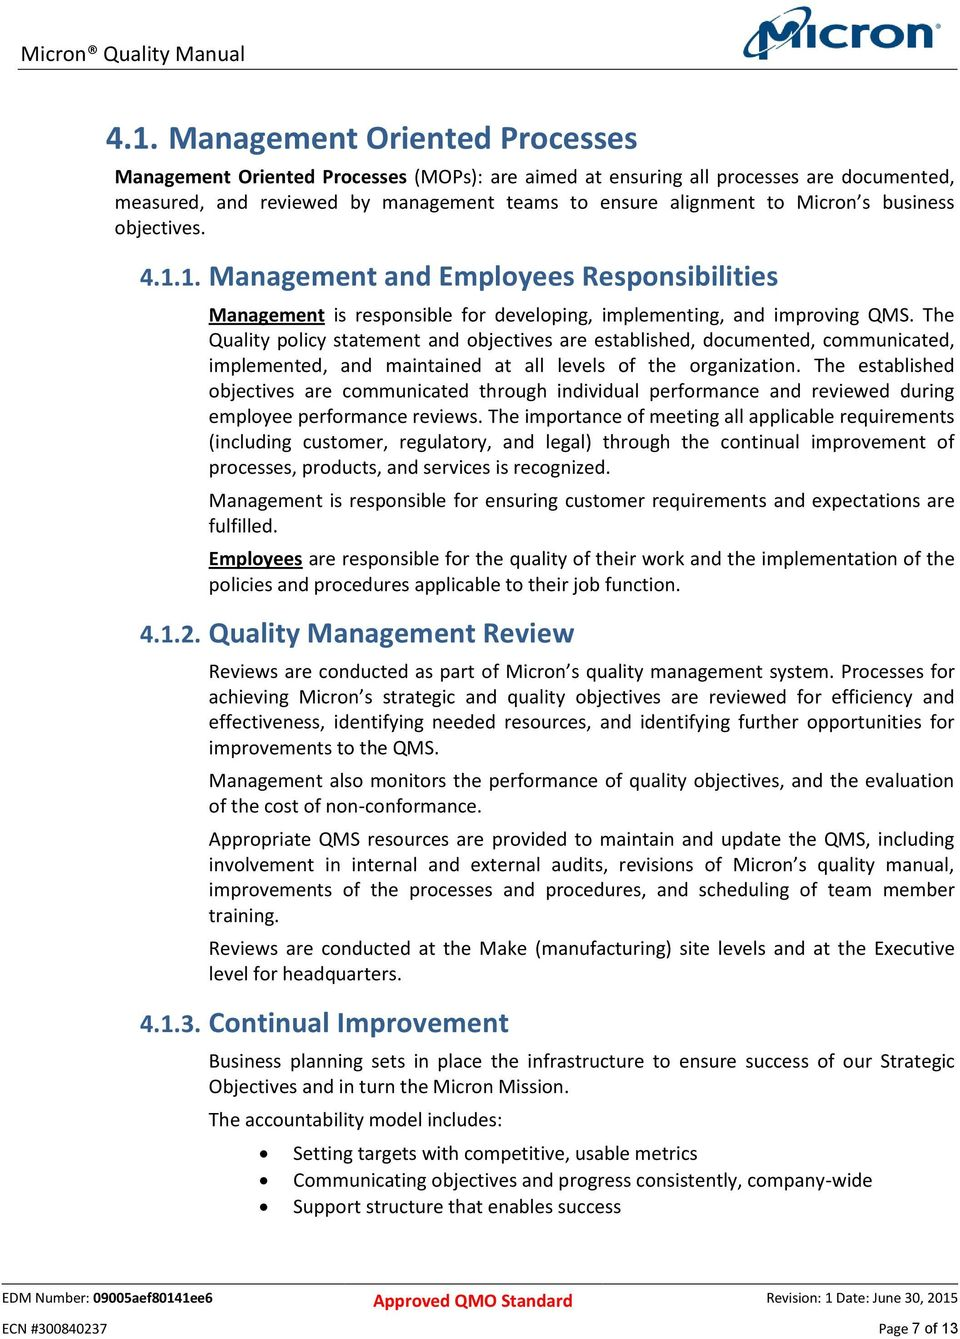 The Quality policy statement and objectives are established, documented, communicated, implemented, and maintained at all levels of the organization.